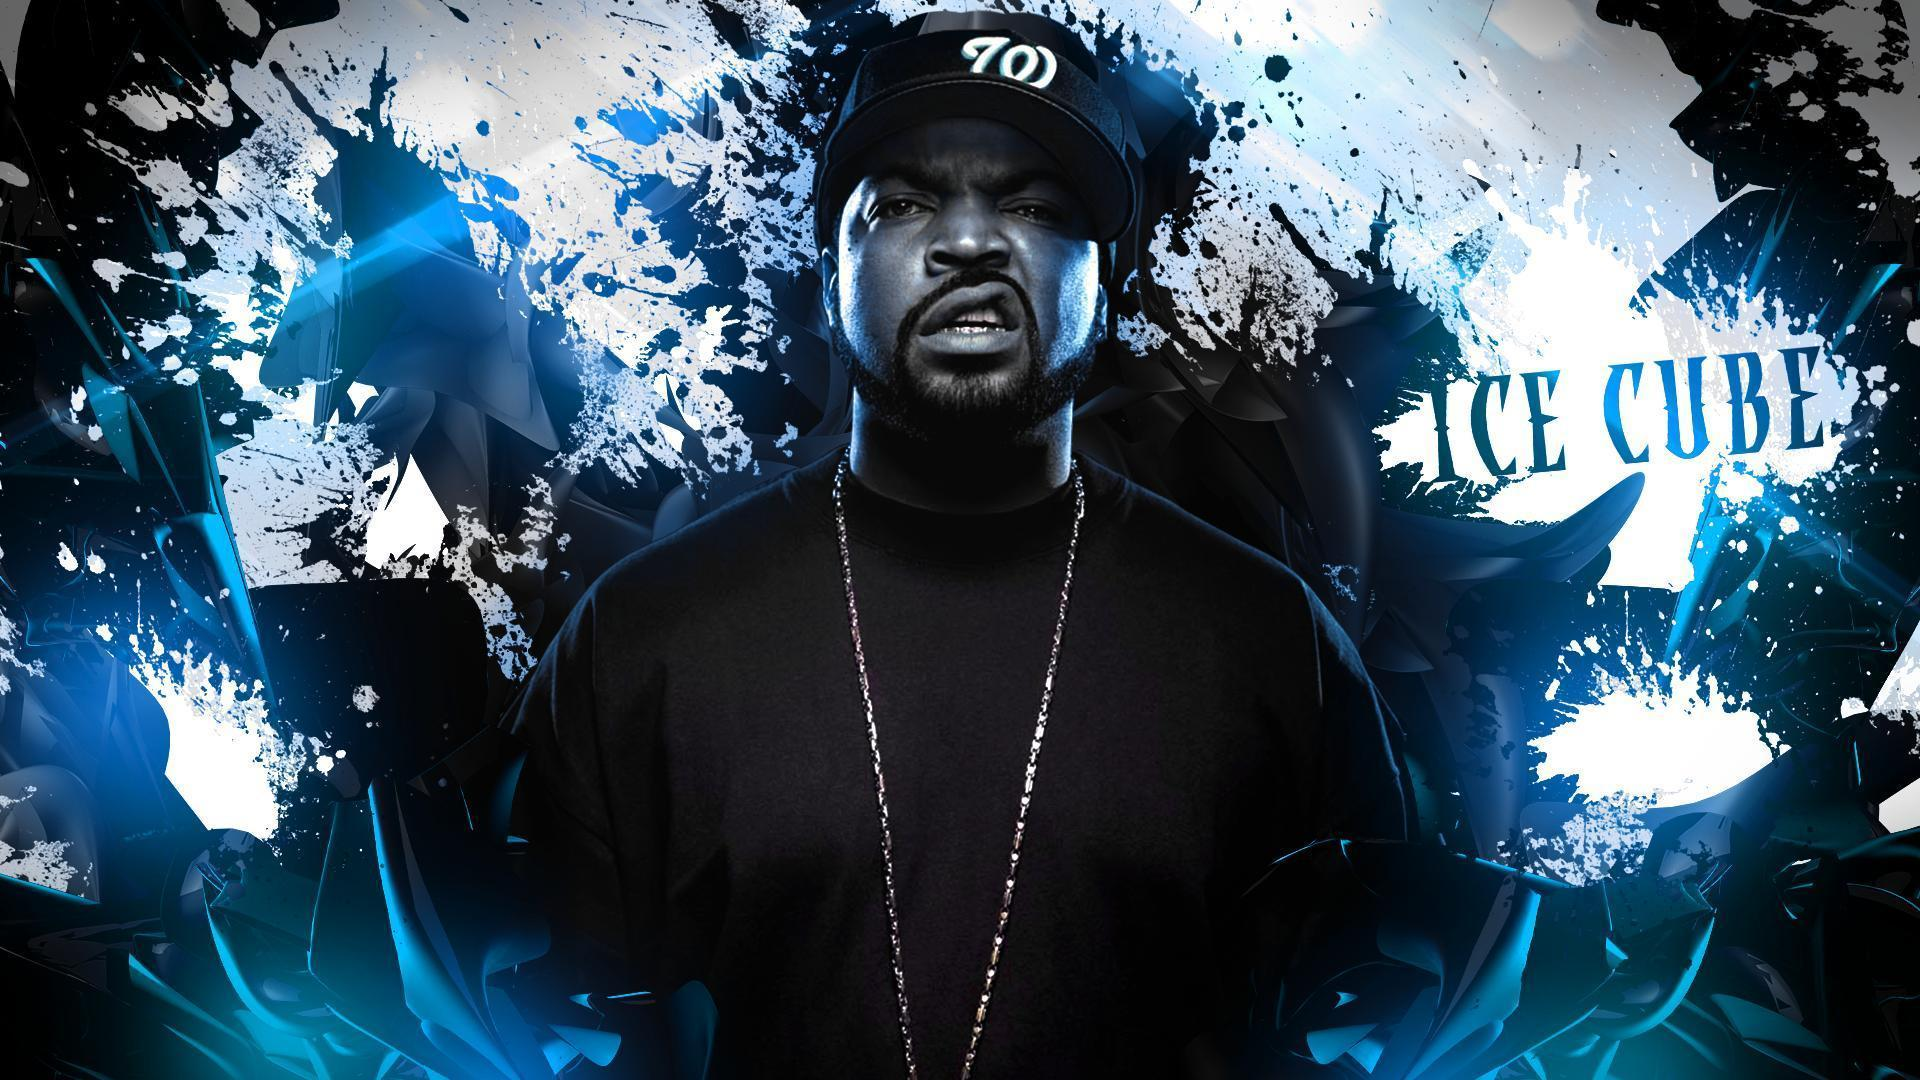 Ice Cube Wallpapers - Wallpaper Cave Ice Cube Wallpaper Iphone